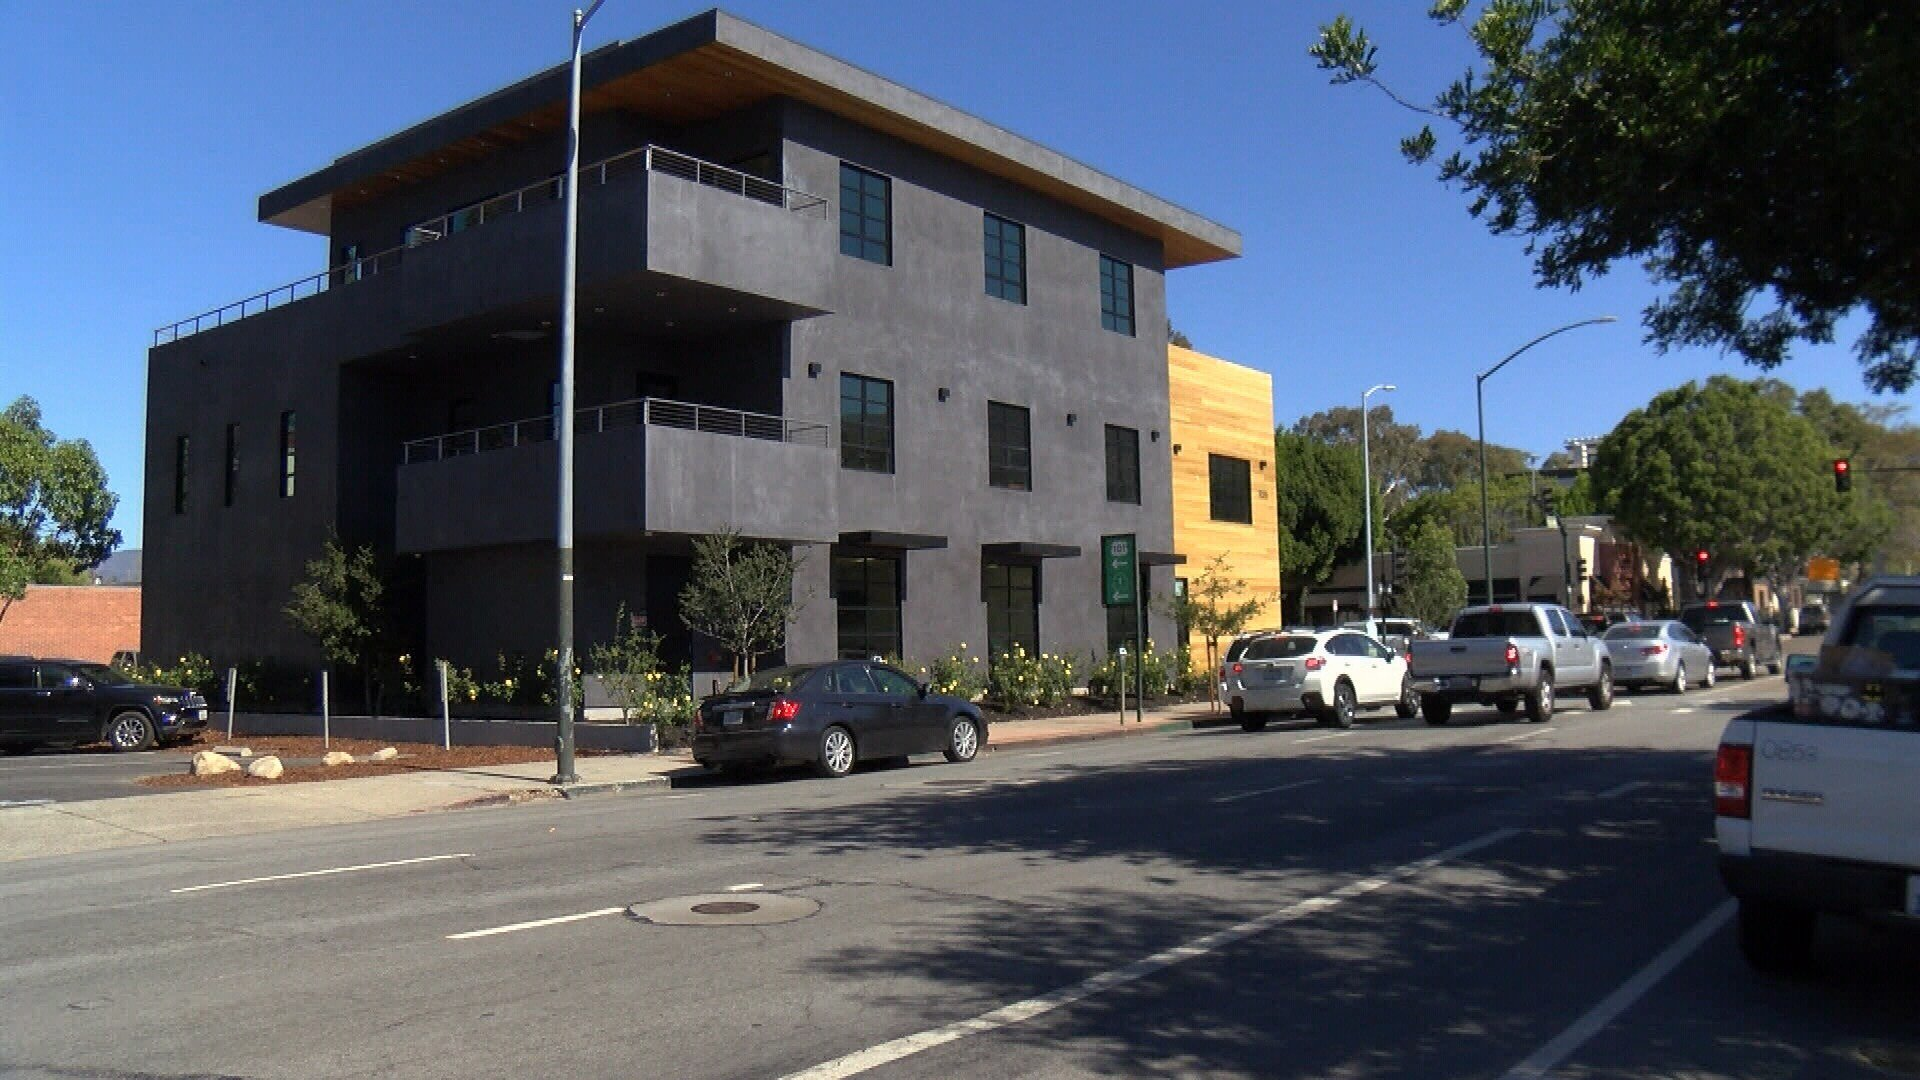 Stalwork Inc. was the construction company responsible for painting the building. (KSBY photo)